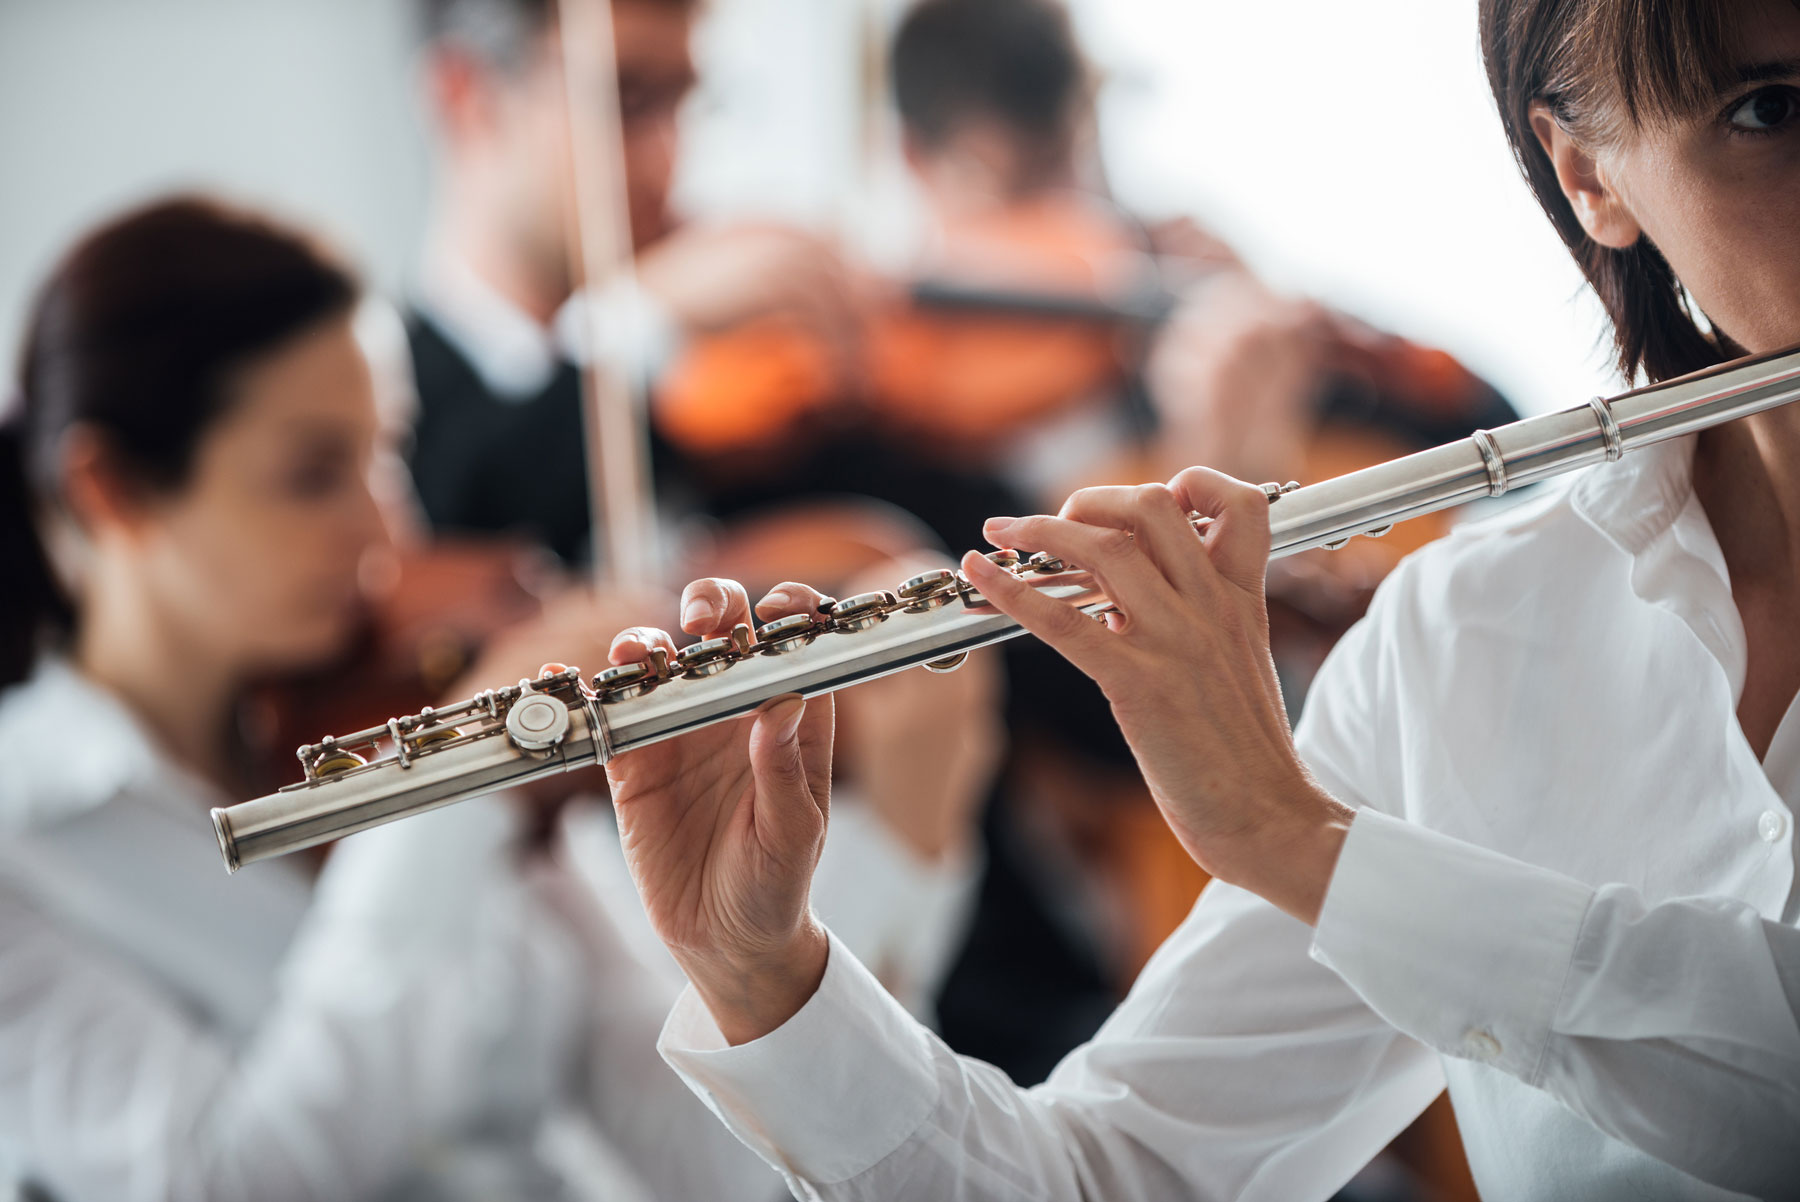 bigstock-professional-flute-player-perf-138587060